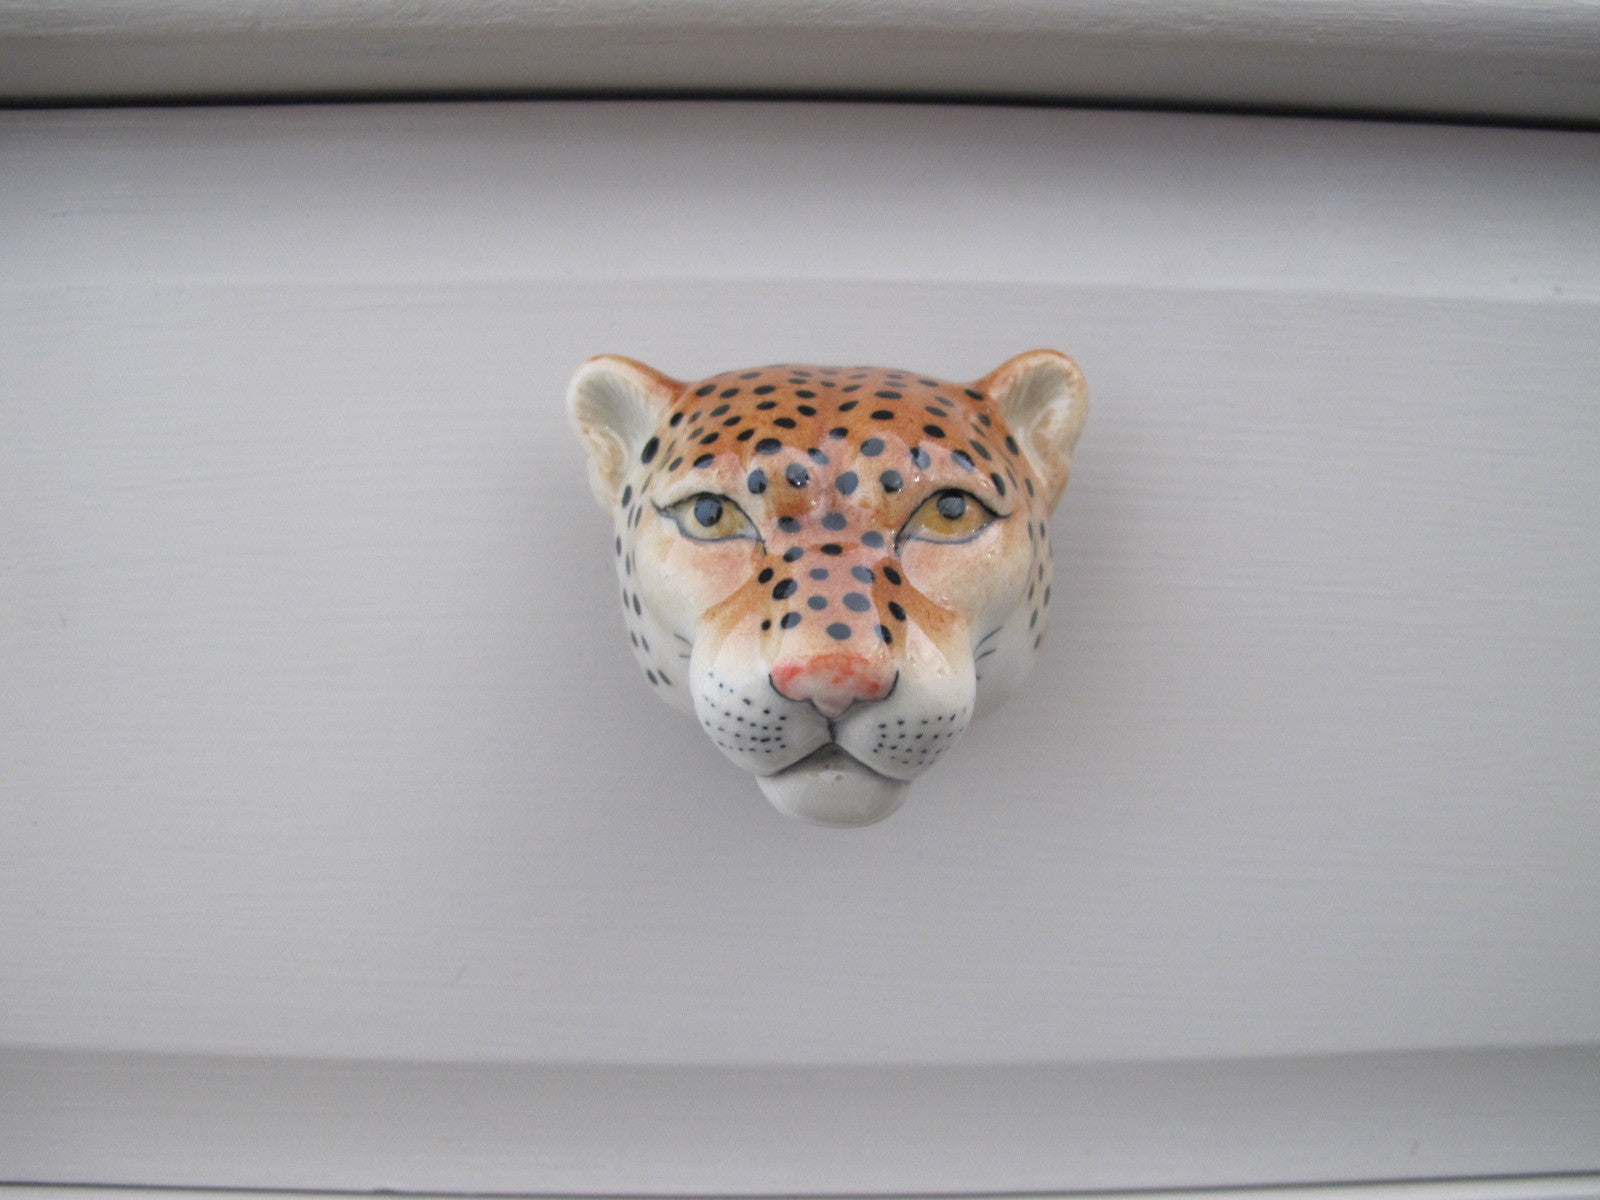 Leopard Head Doorknob